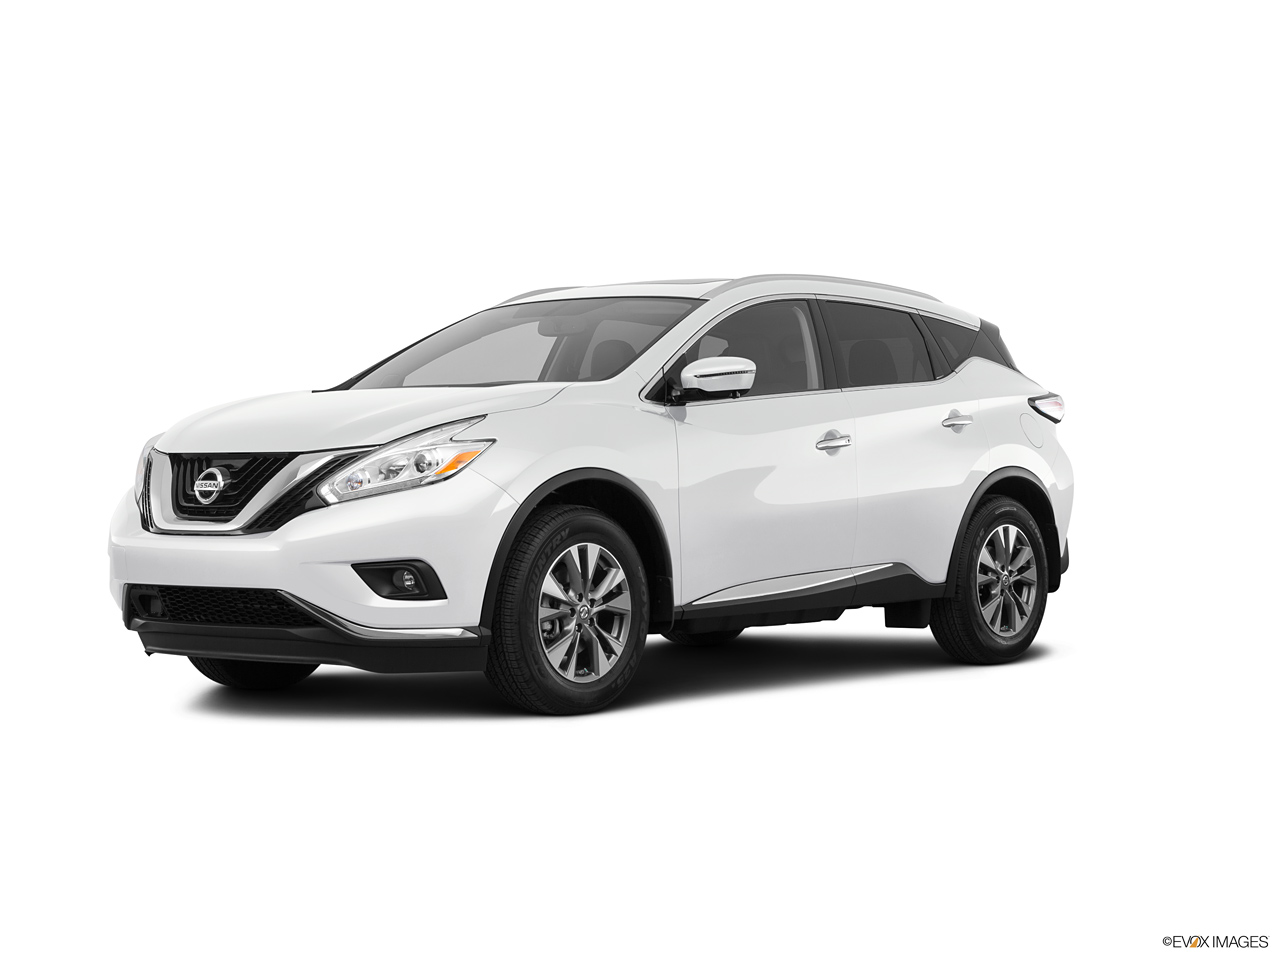 nissan murano 2017 3 5l le in kuwait new car prices. Black Bedroom Furniture Sets. Home Design Ideas